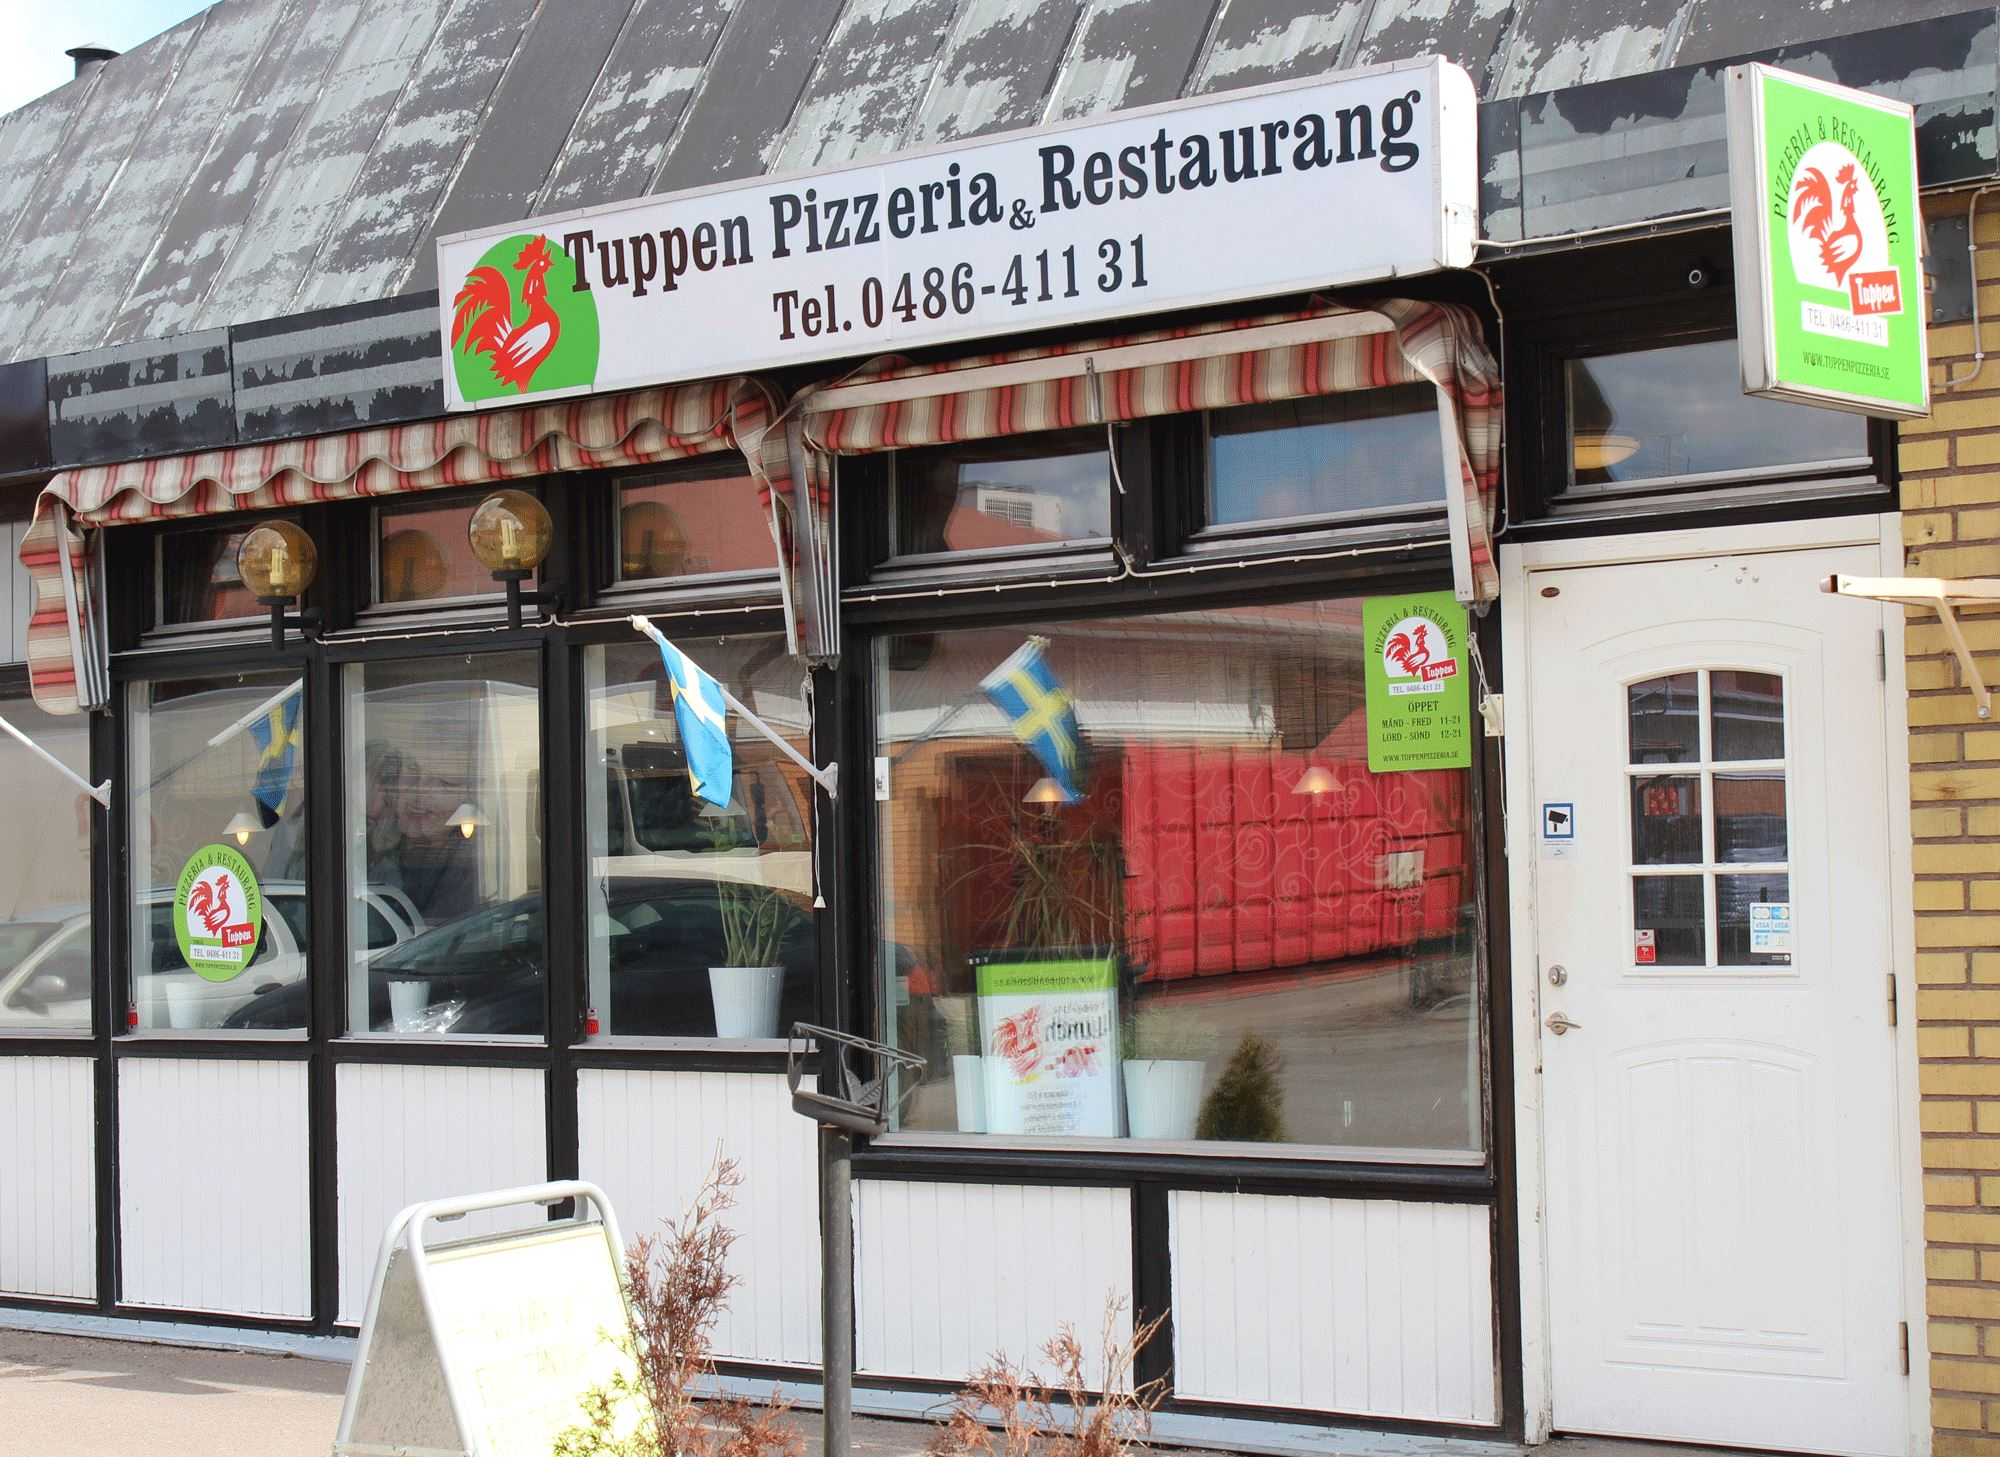 Tuppen restaurant and pizzeria